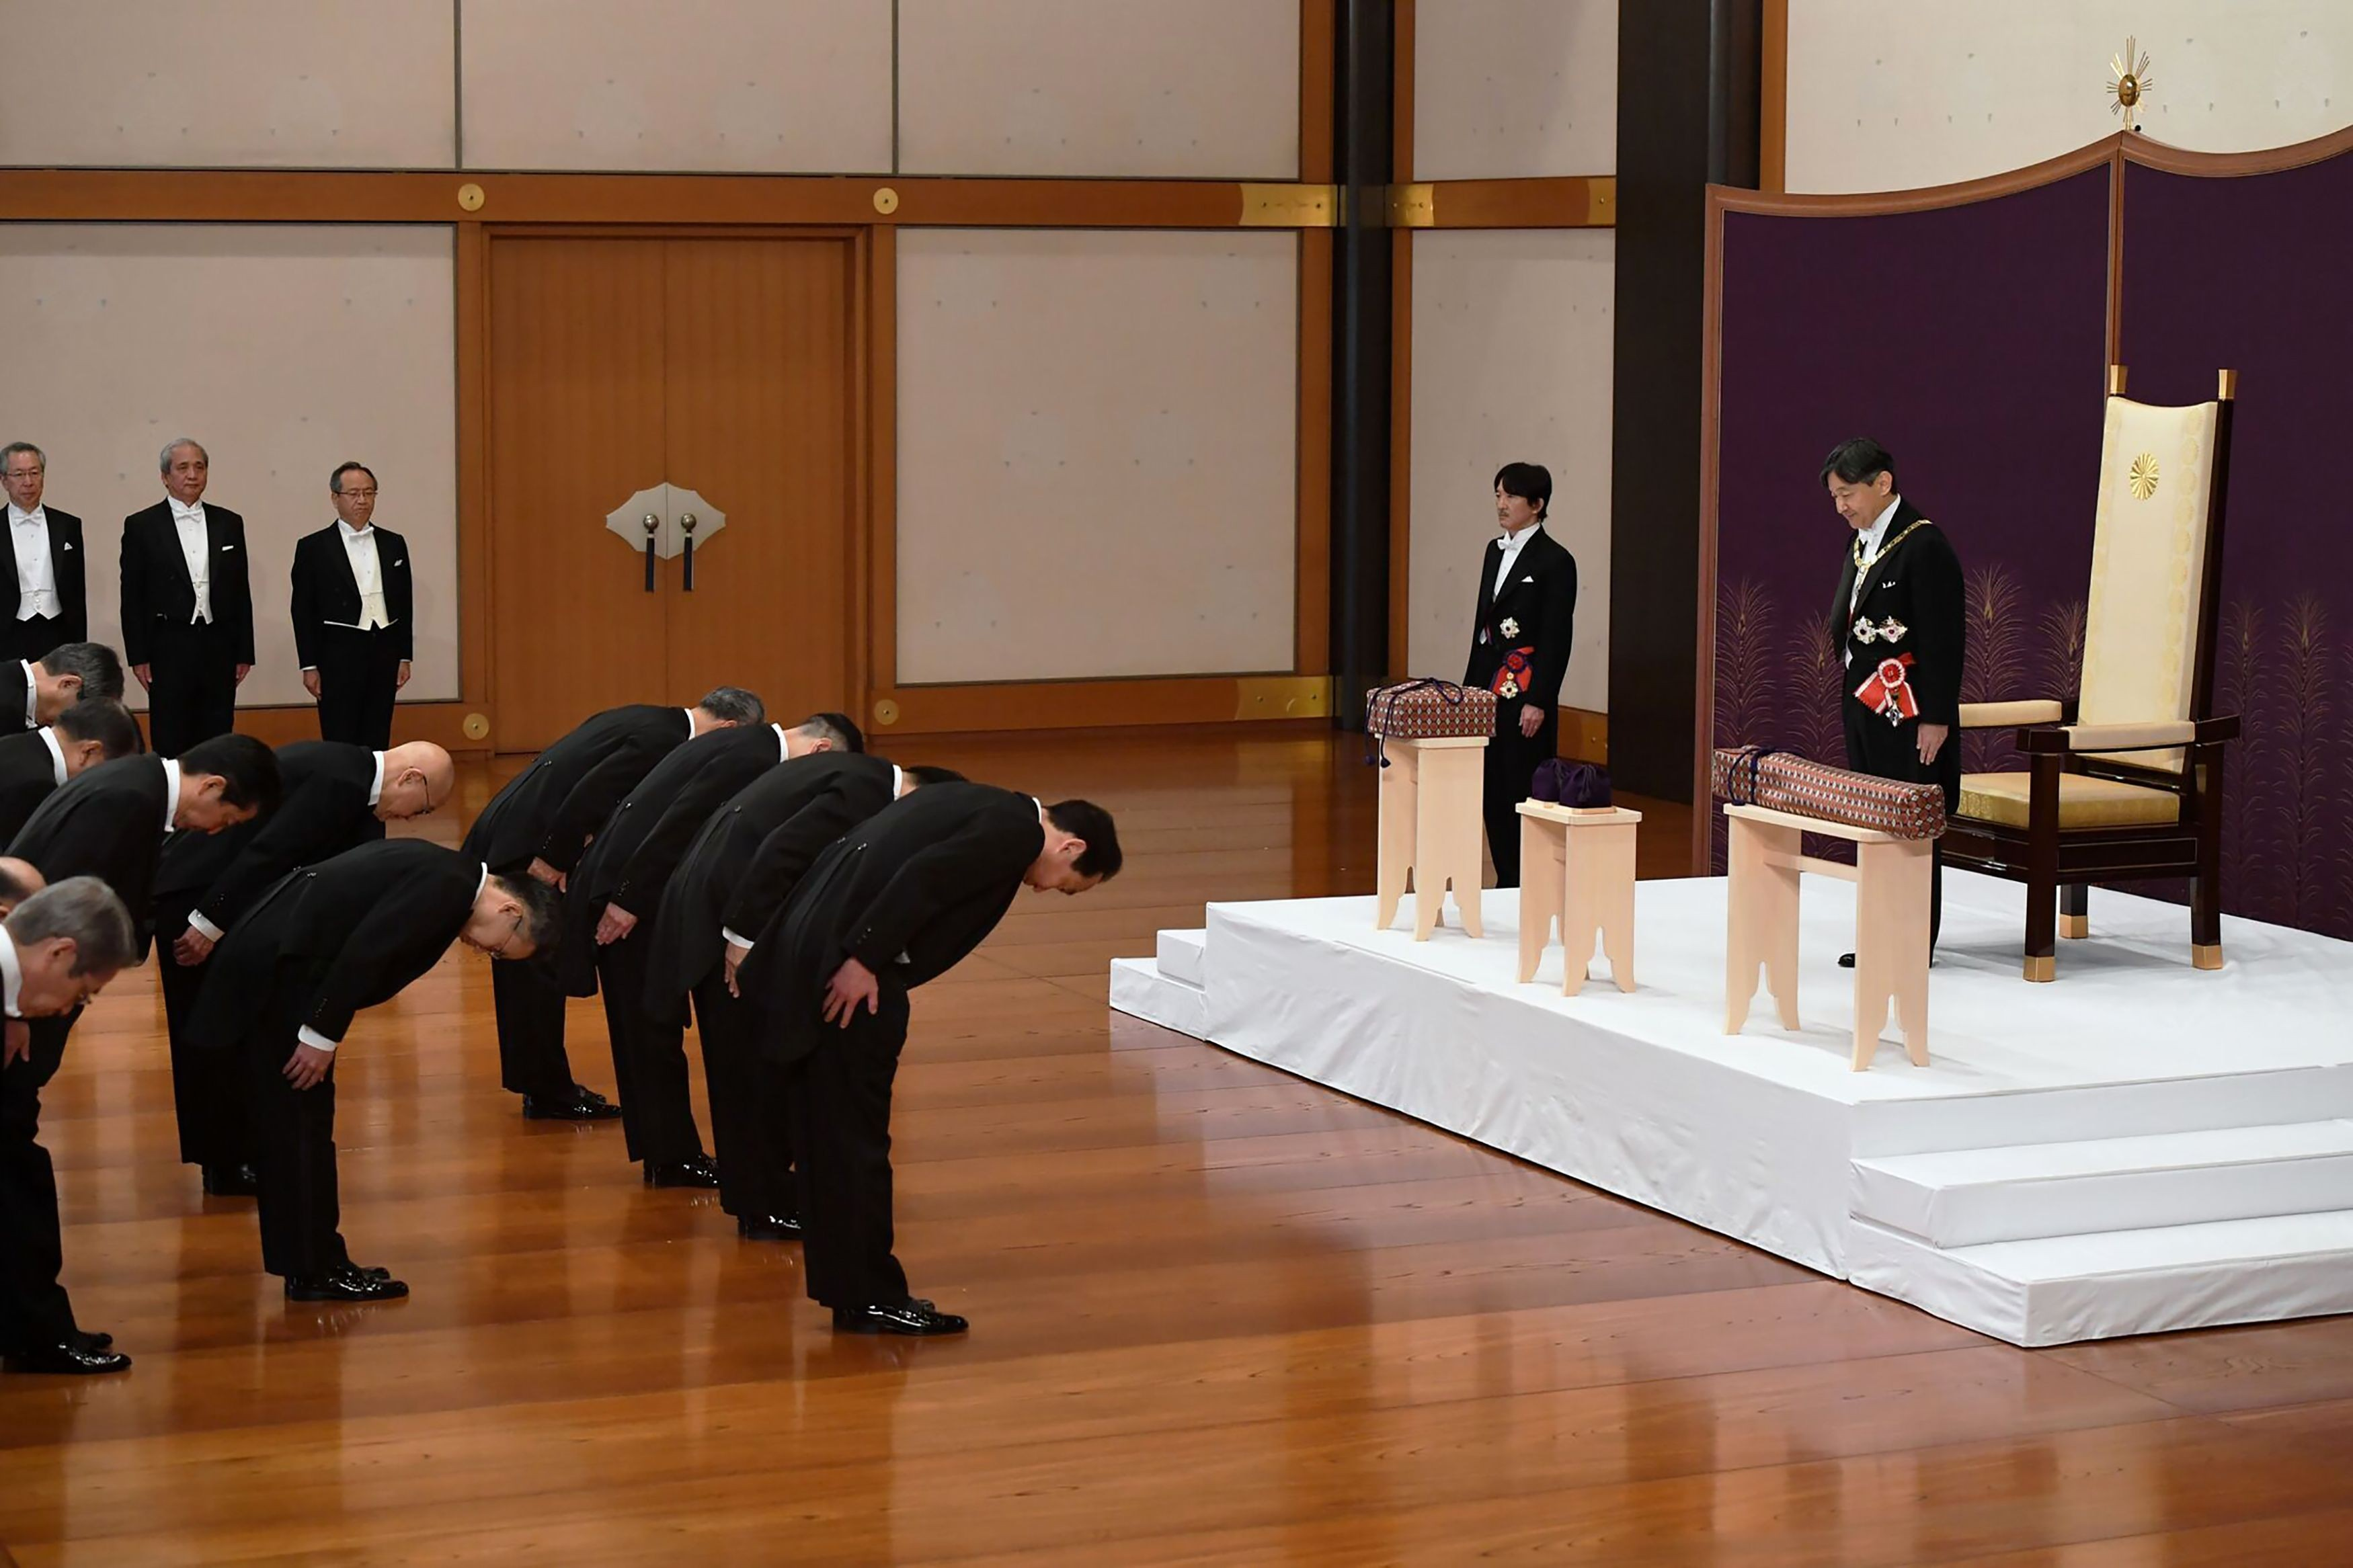 A sword, a jewel and a mirror: what are Japan's Sacred Treasures